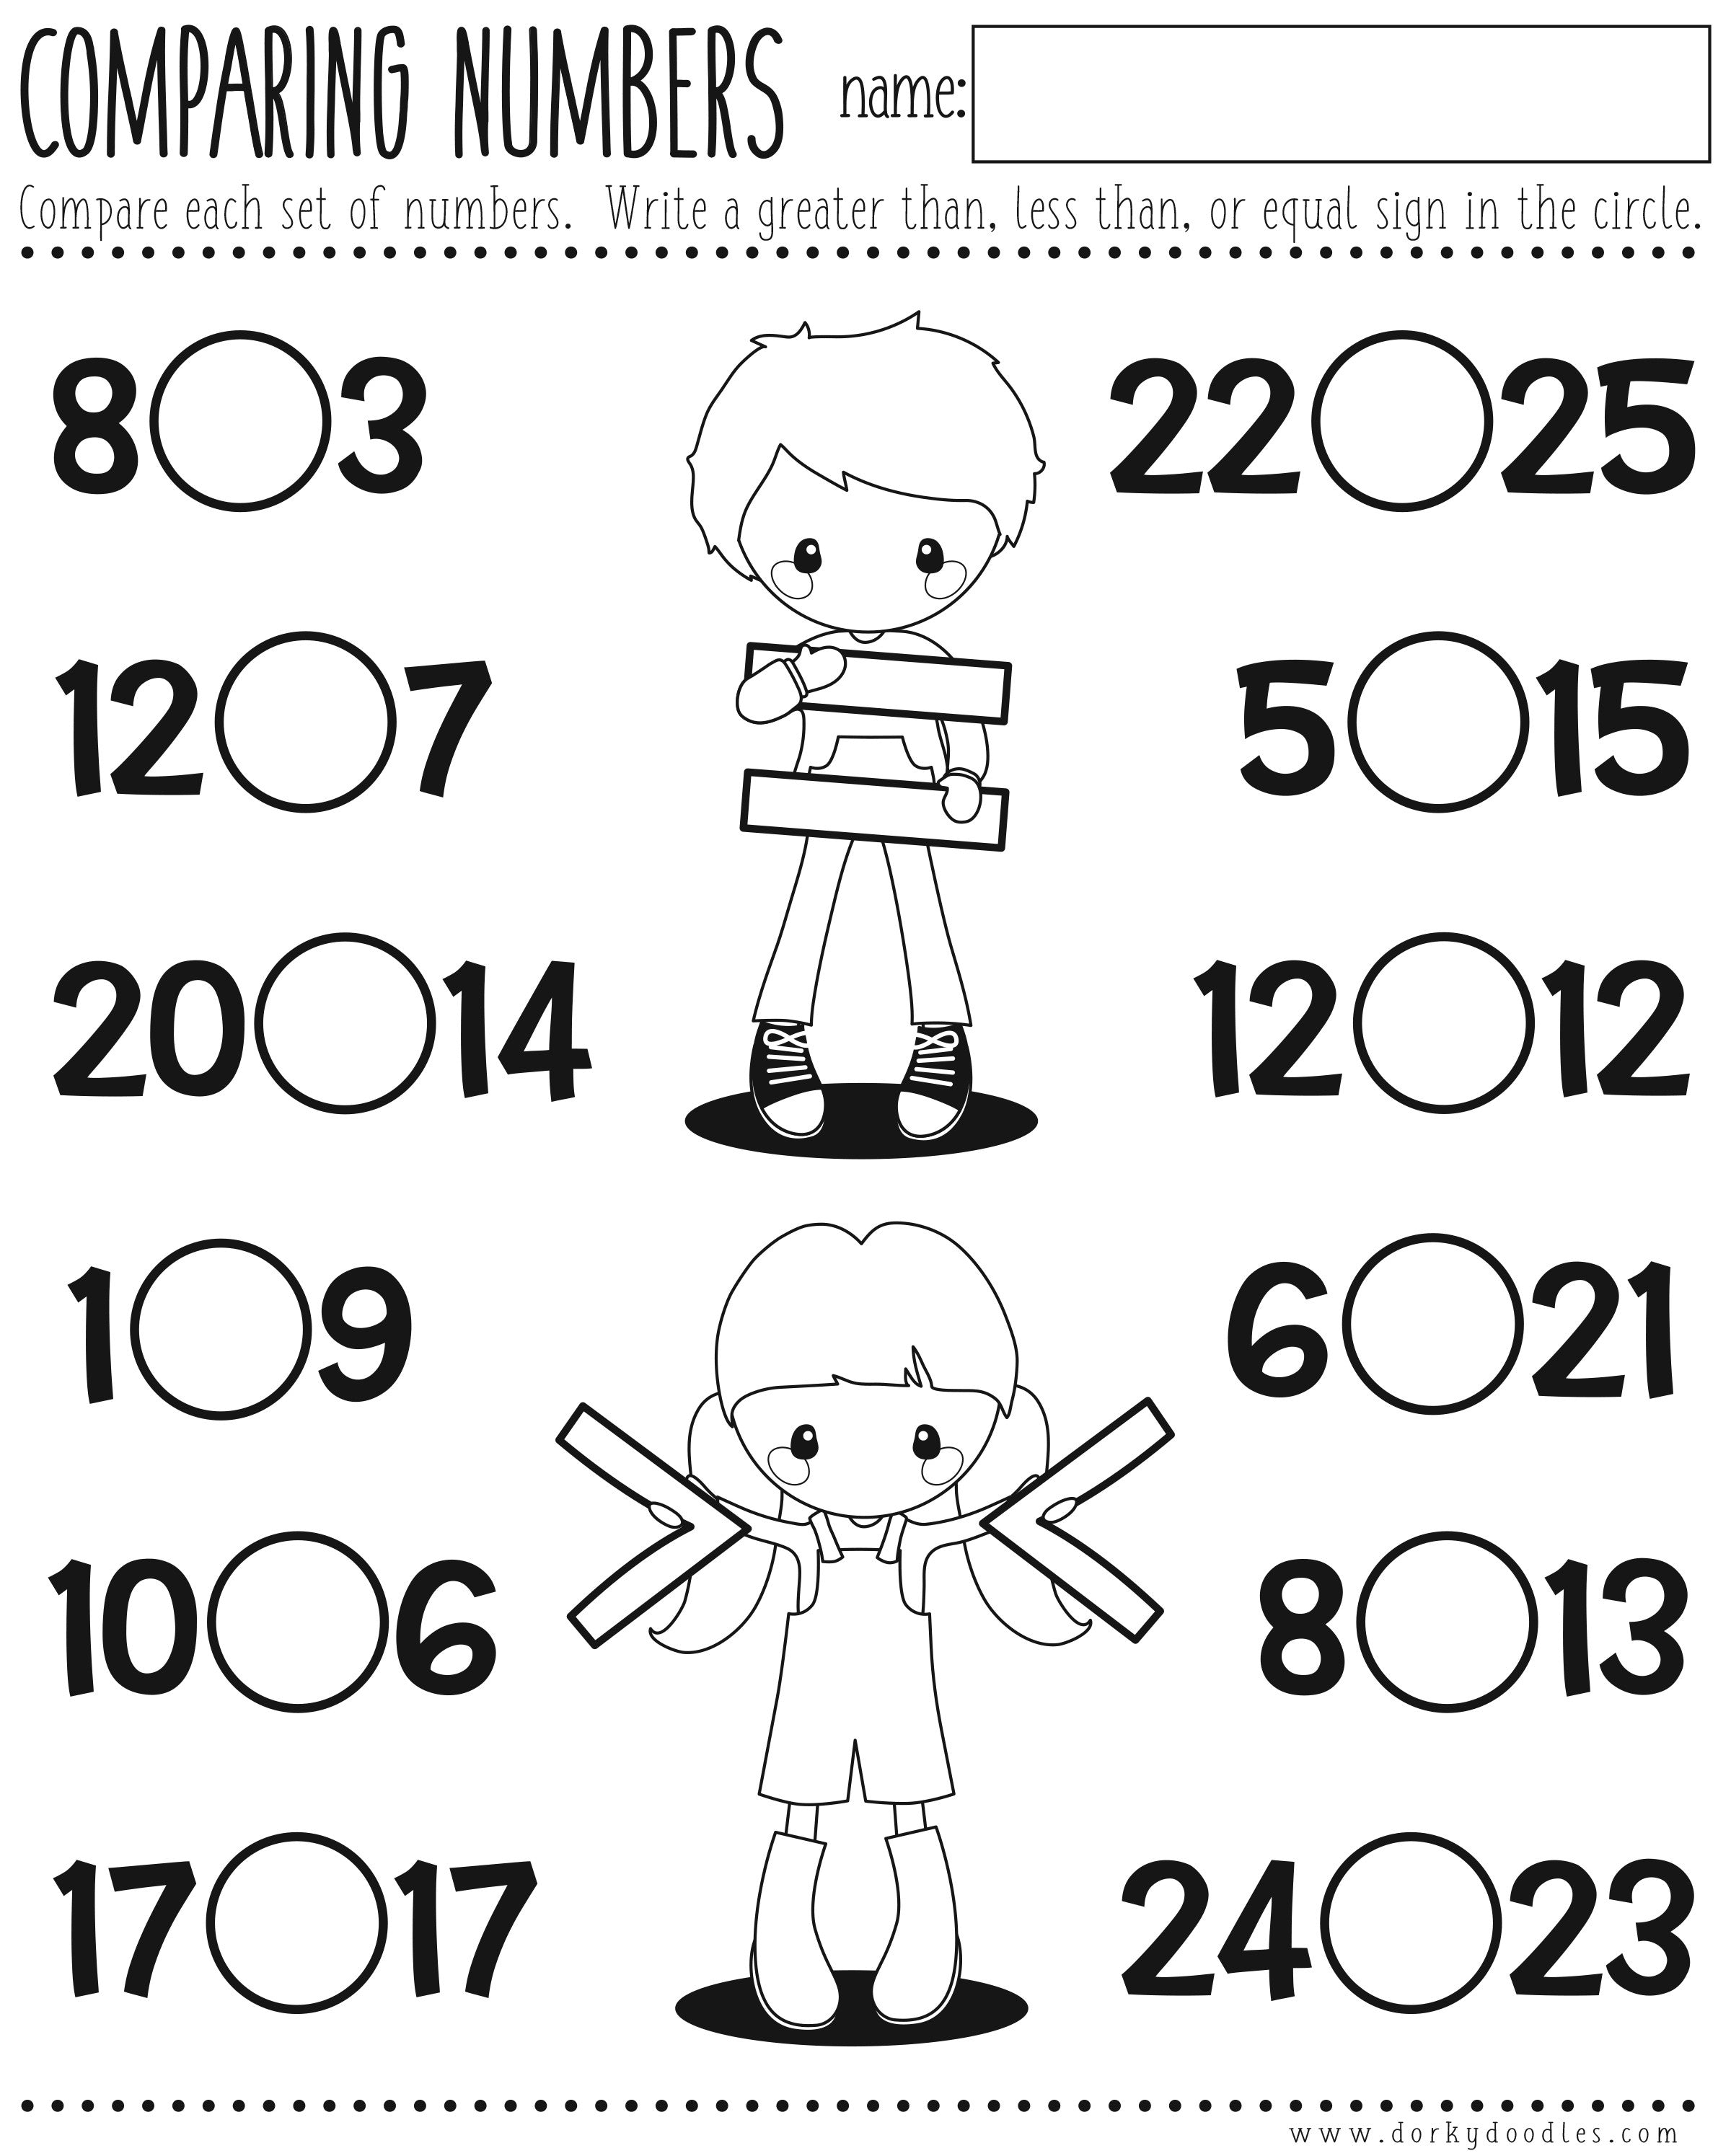 worksheet Greater Than Less Than Or Equal To Worksheets greater or less than comparing numbers printable dorky doodles worksheet